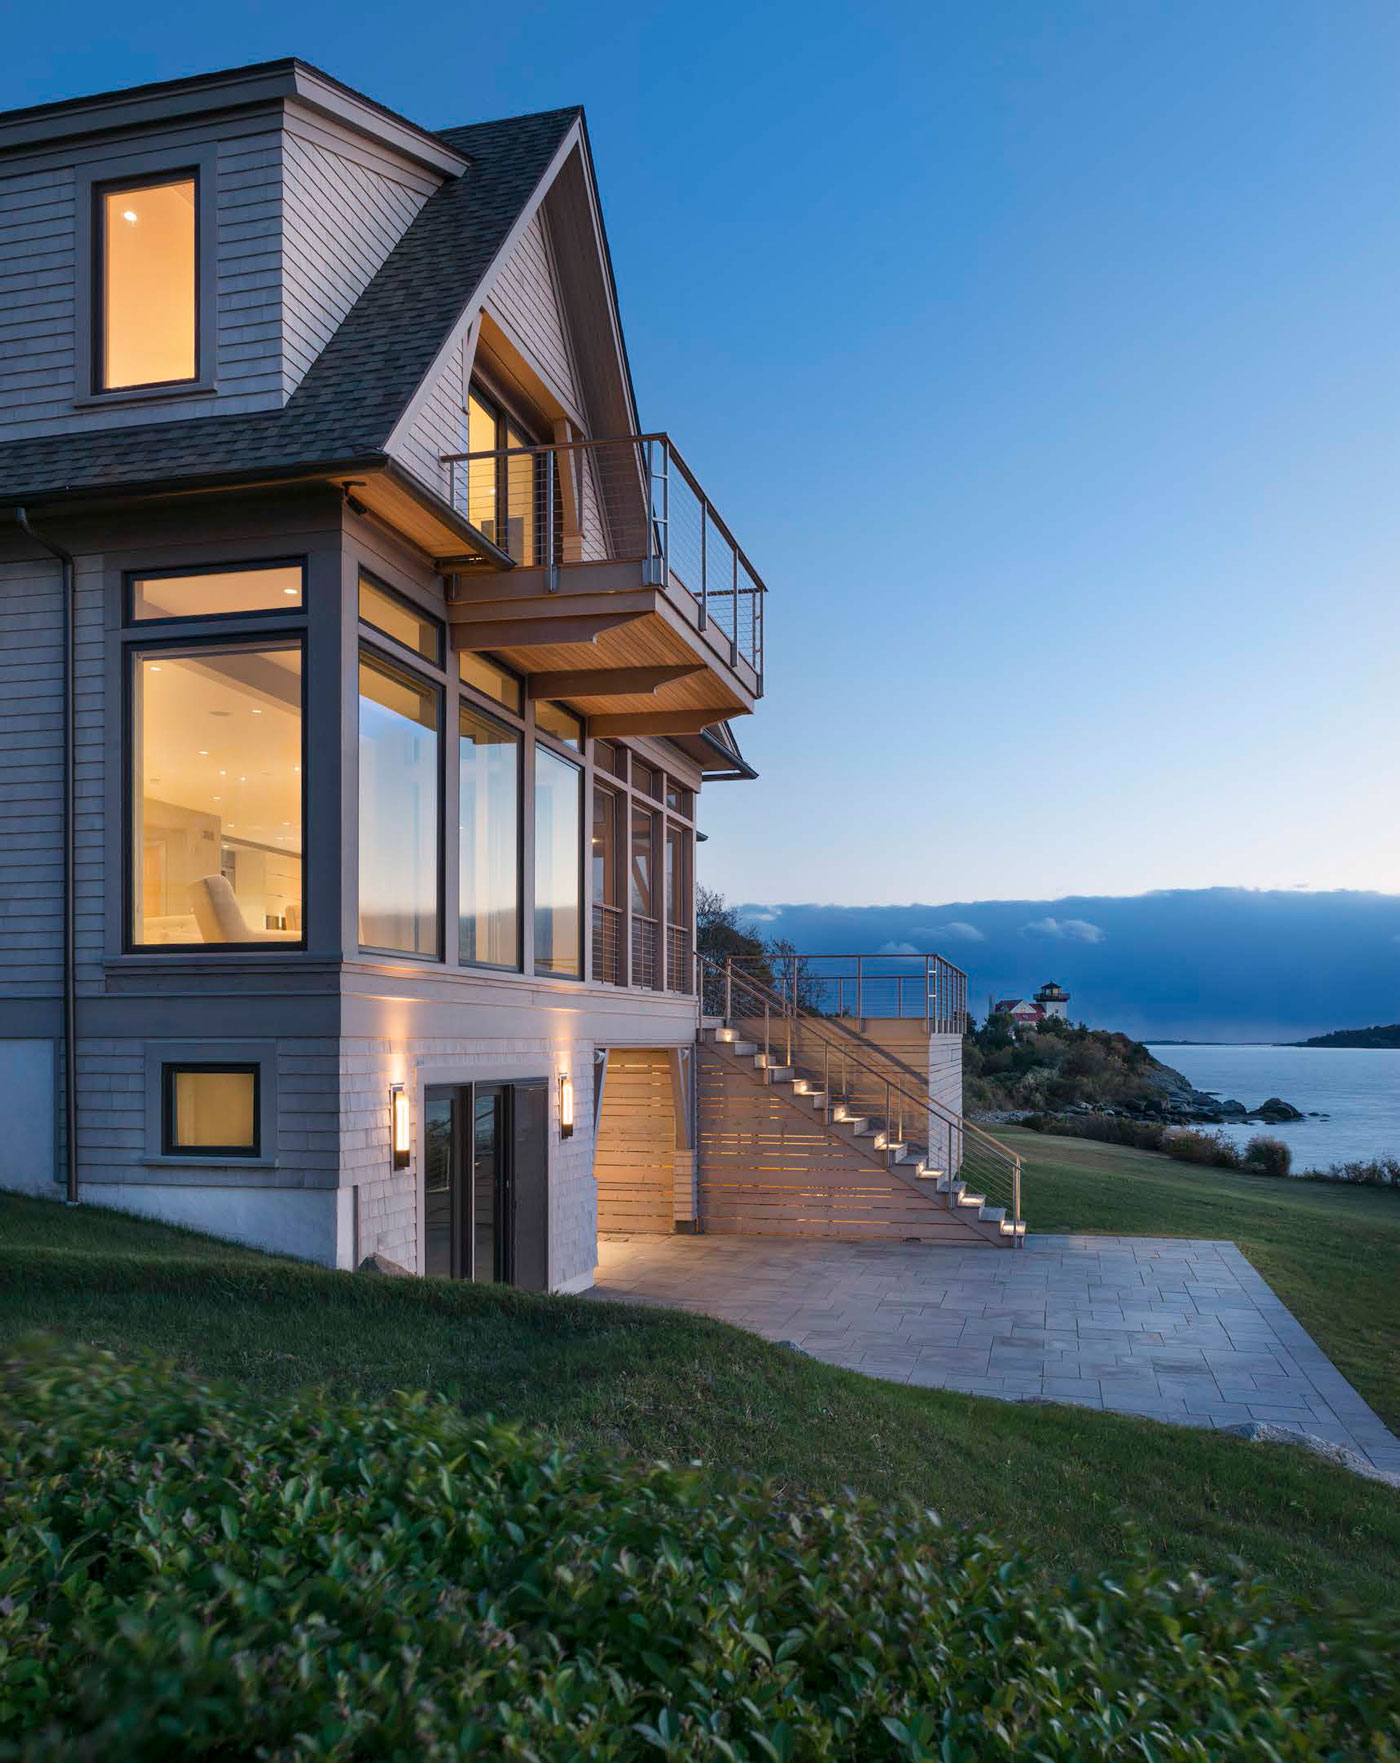 back view of beautiful home along the water